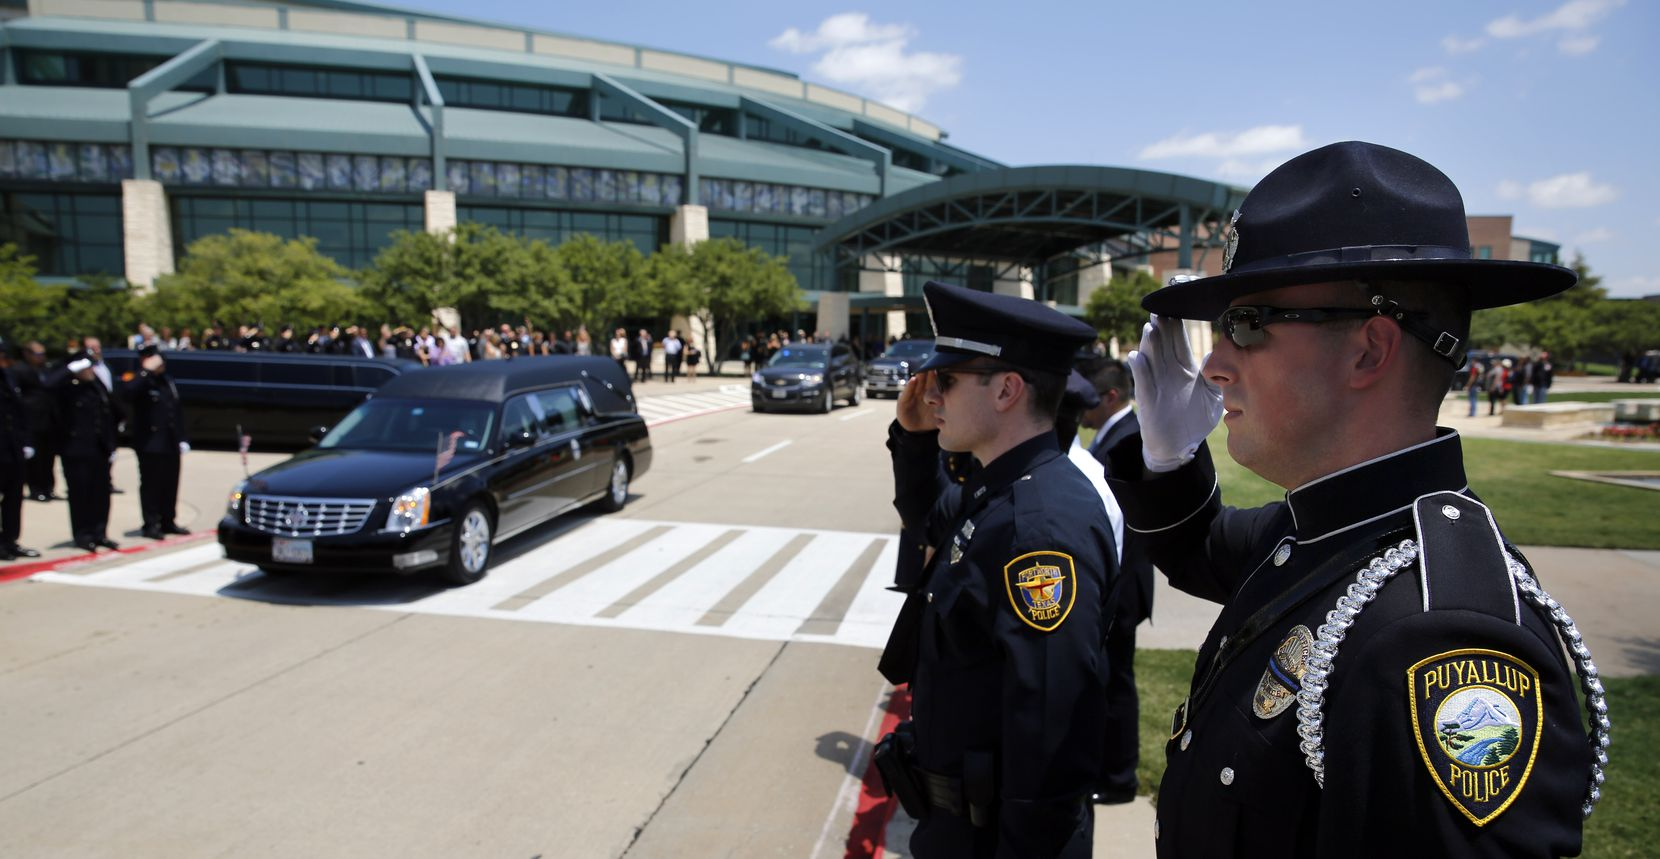 Police officers salute as the hearse passes in the funeral procession for fallen Dallas police officer Lorne Ahrens at Prestonwood Baptist Church in Plano, Wednesday, July 12, 2016. Ahrens and four other officers were gunned down during an ambush on police in downtown Dallas.